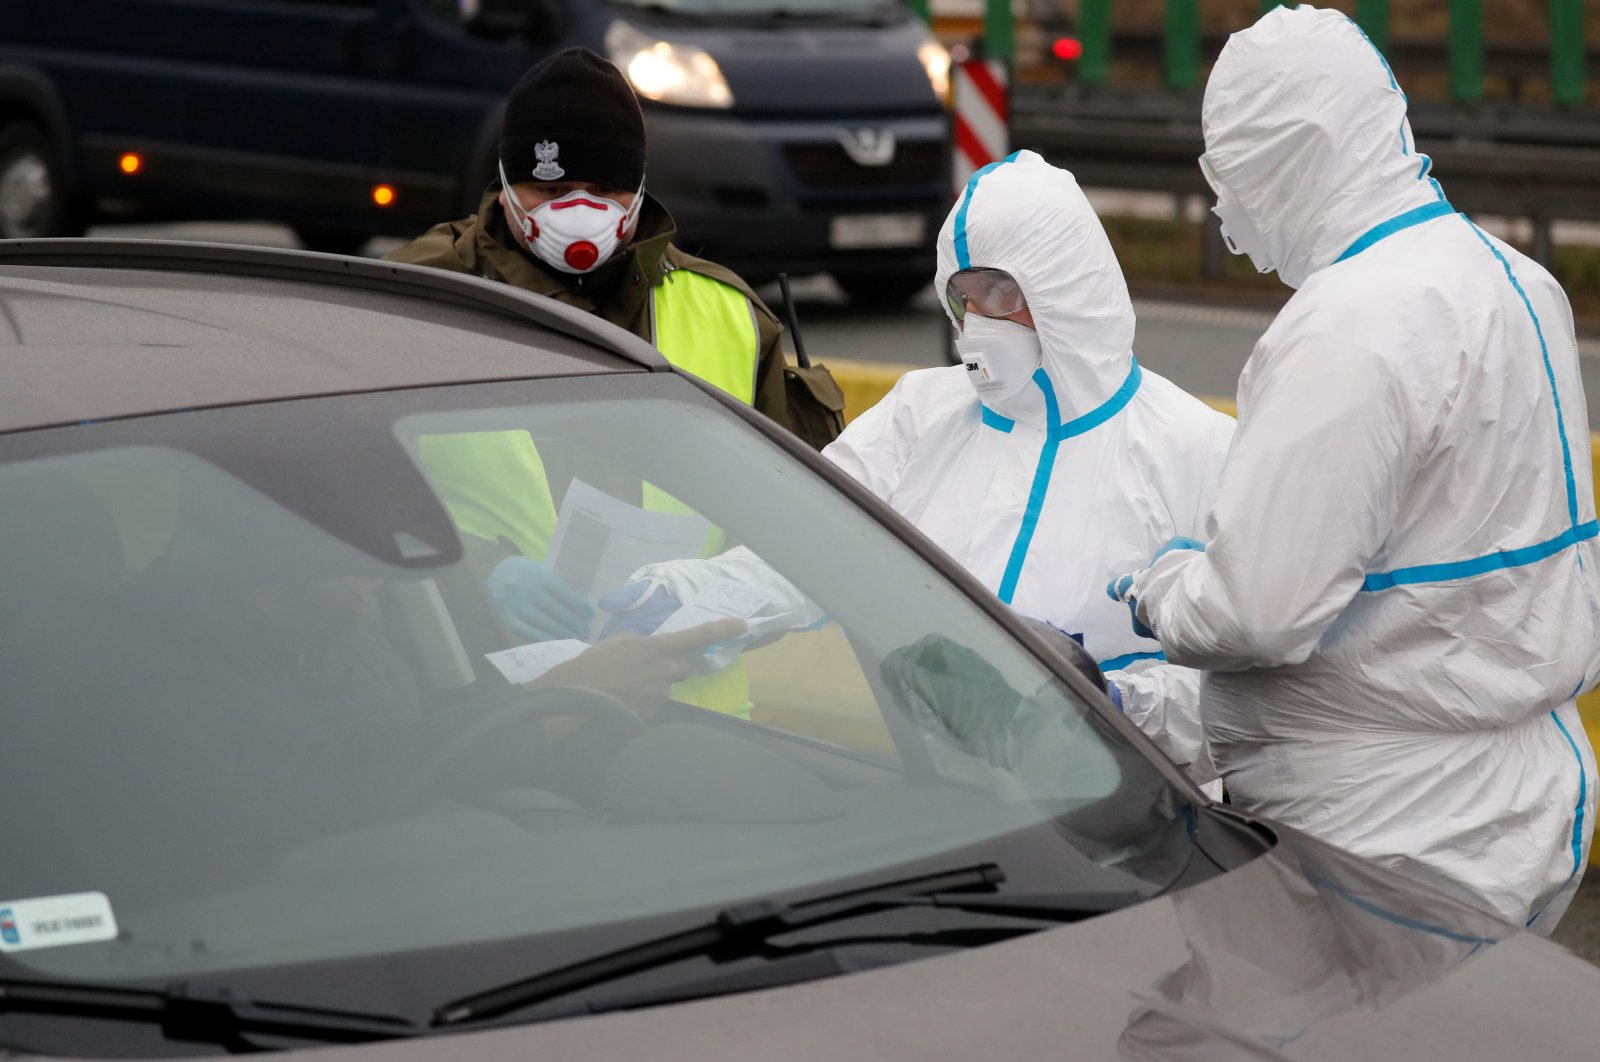 Medical staff with protective clothing perform checks on drivers at Jedrzychowice border crossing, between Poland and Germany, March 9, 2020. (AFP Photo)